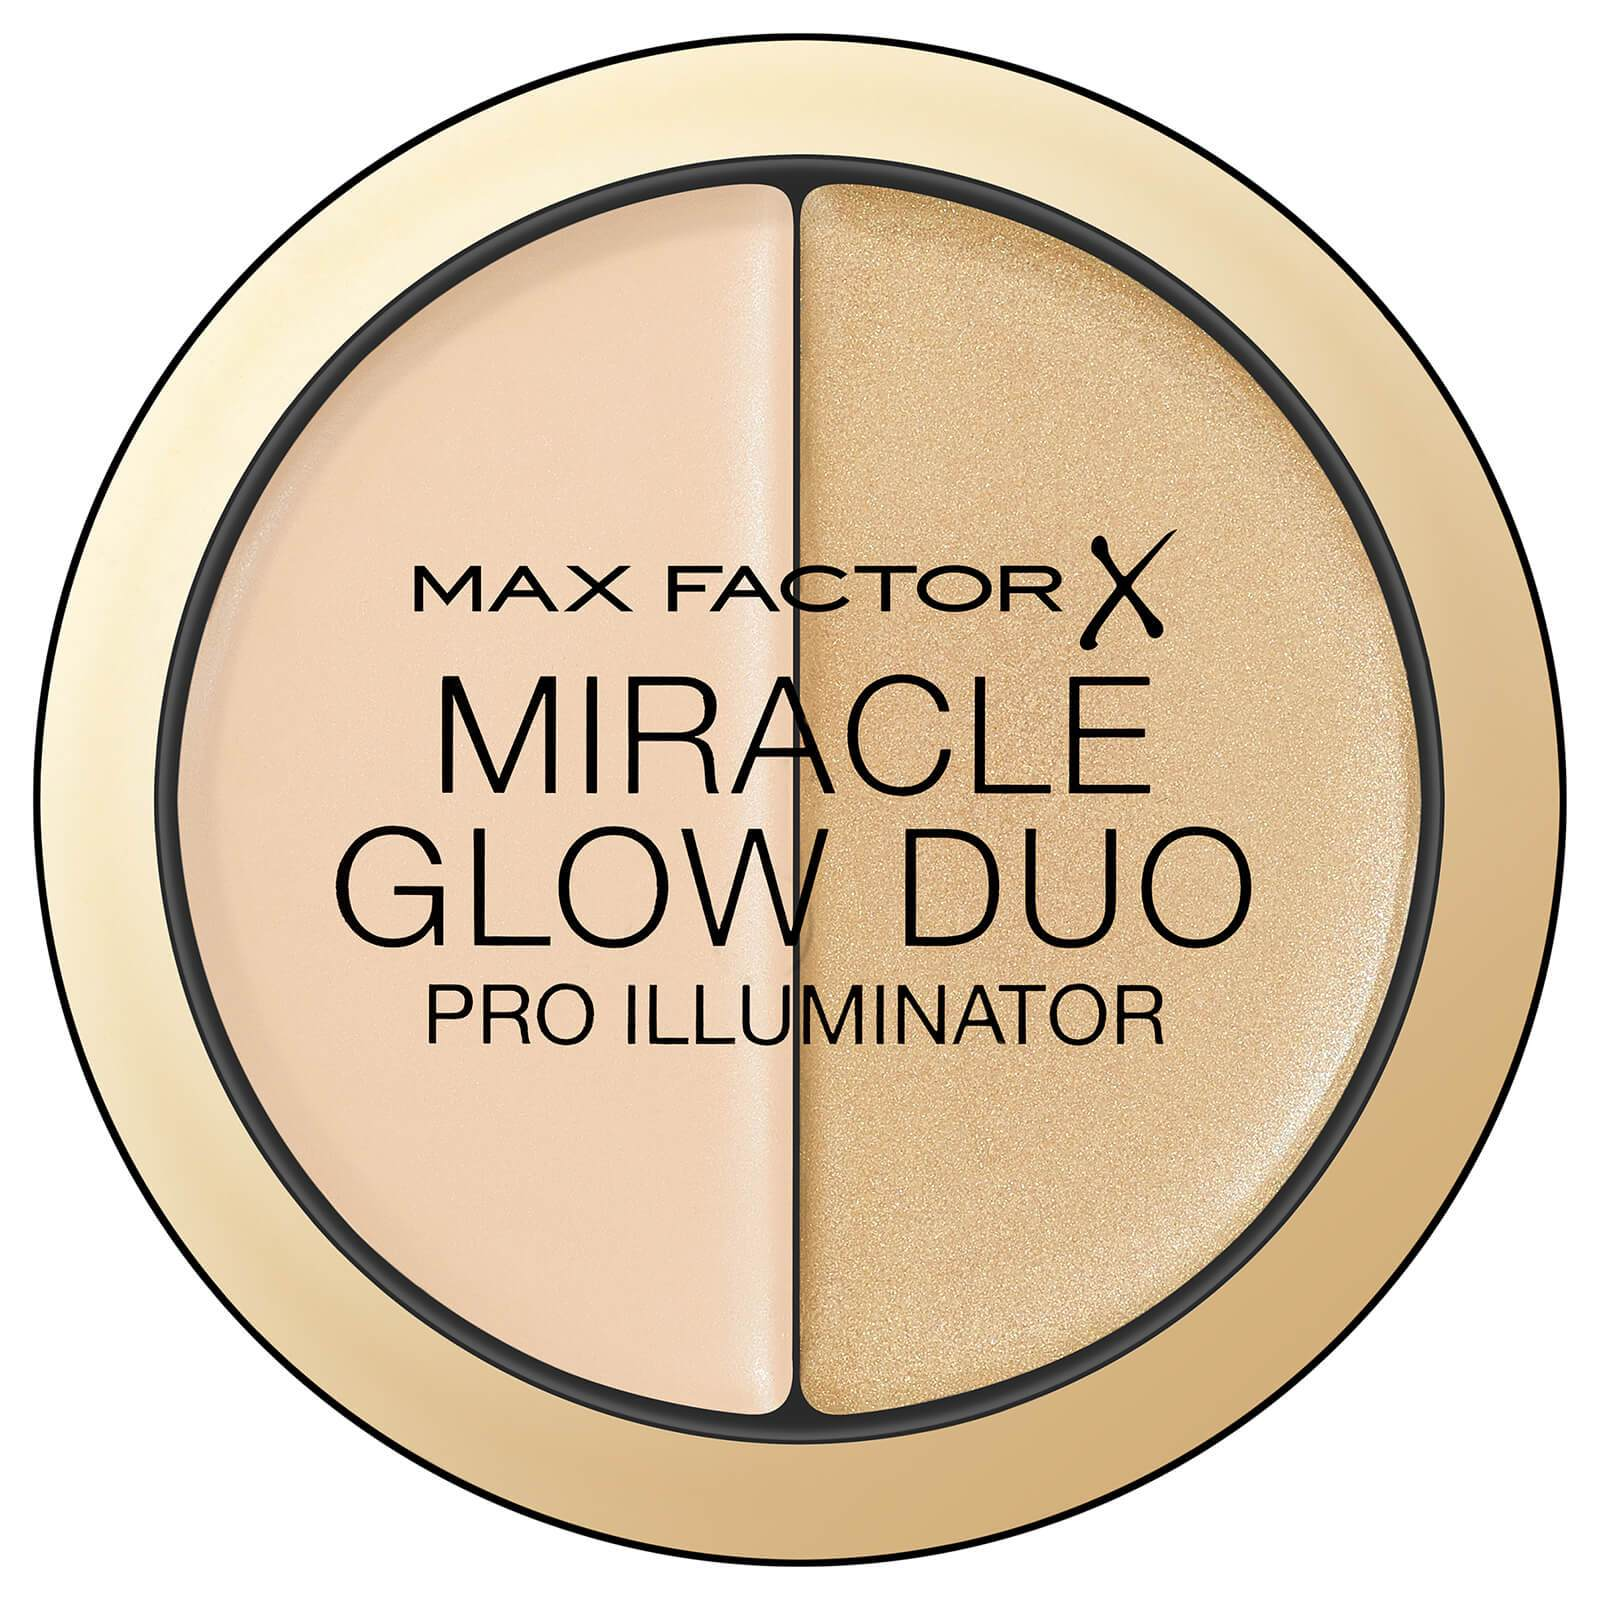 Max Factor Miracle Glow Duo Pro Illuminator - CHOICE OF SHADES